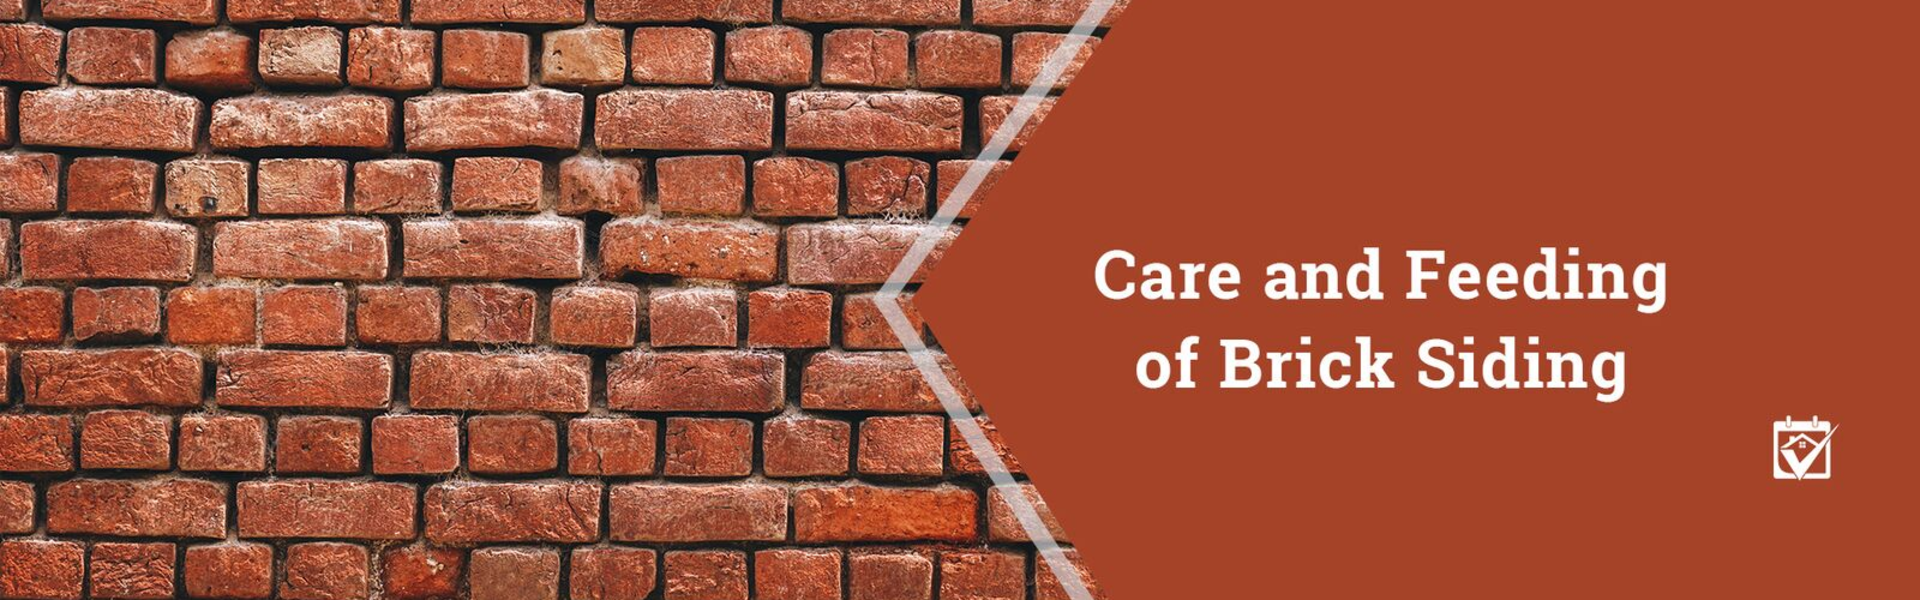 Care and Feeding of Brick Siding